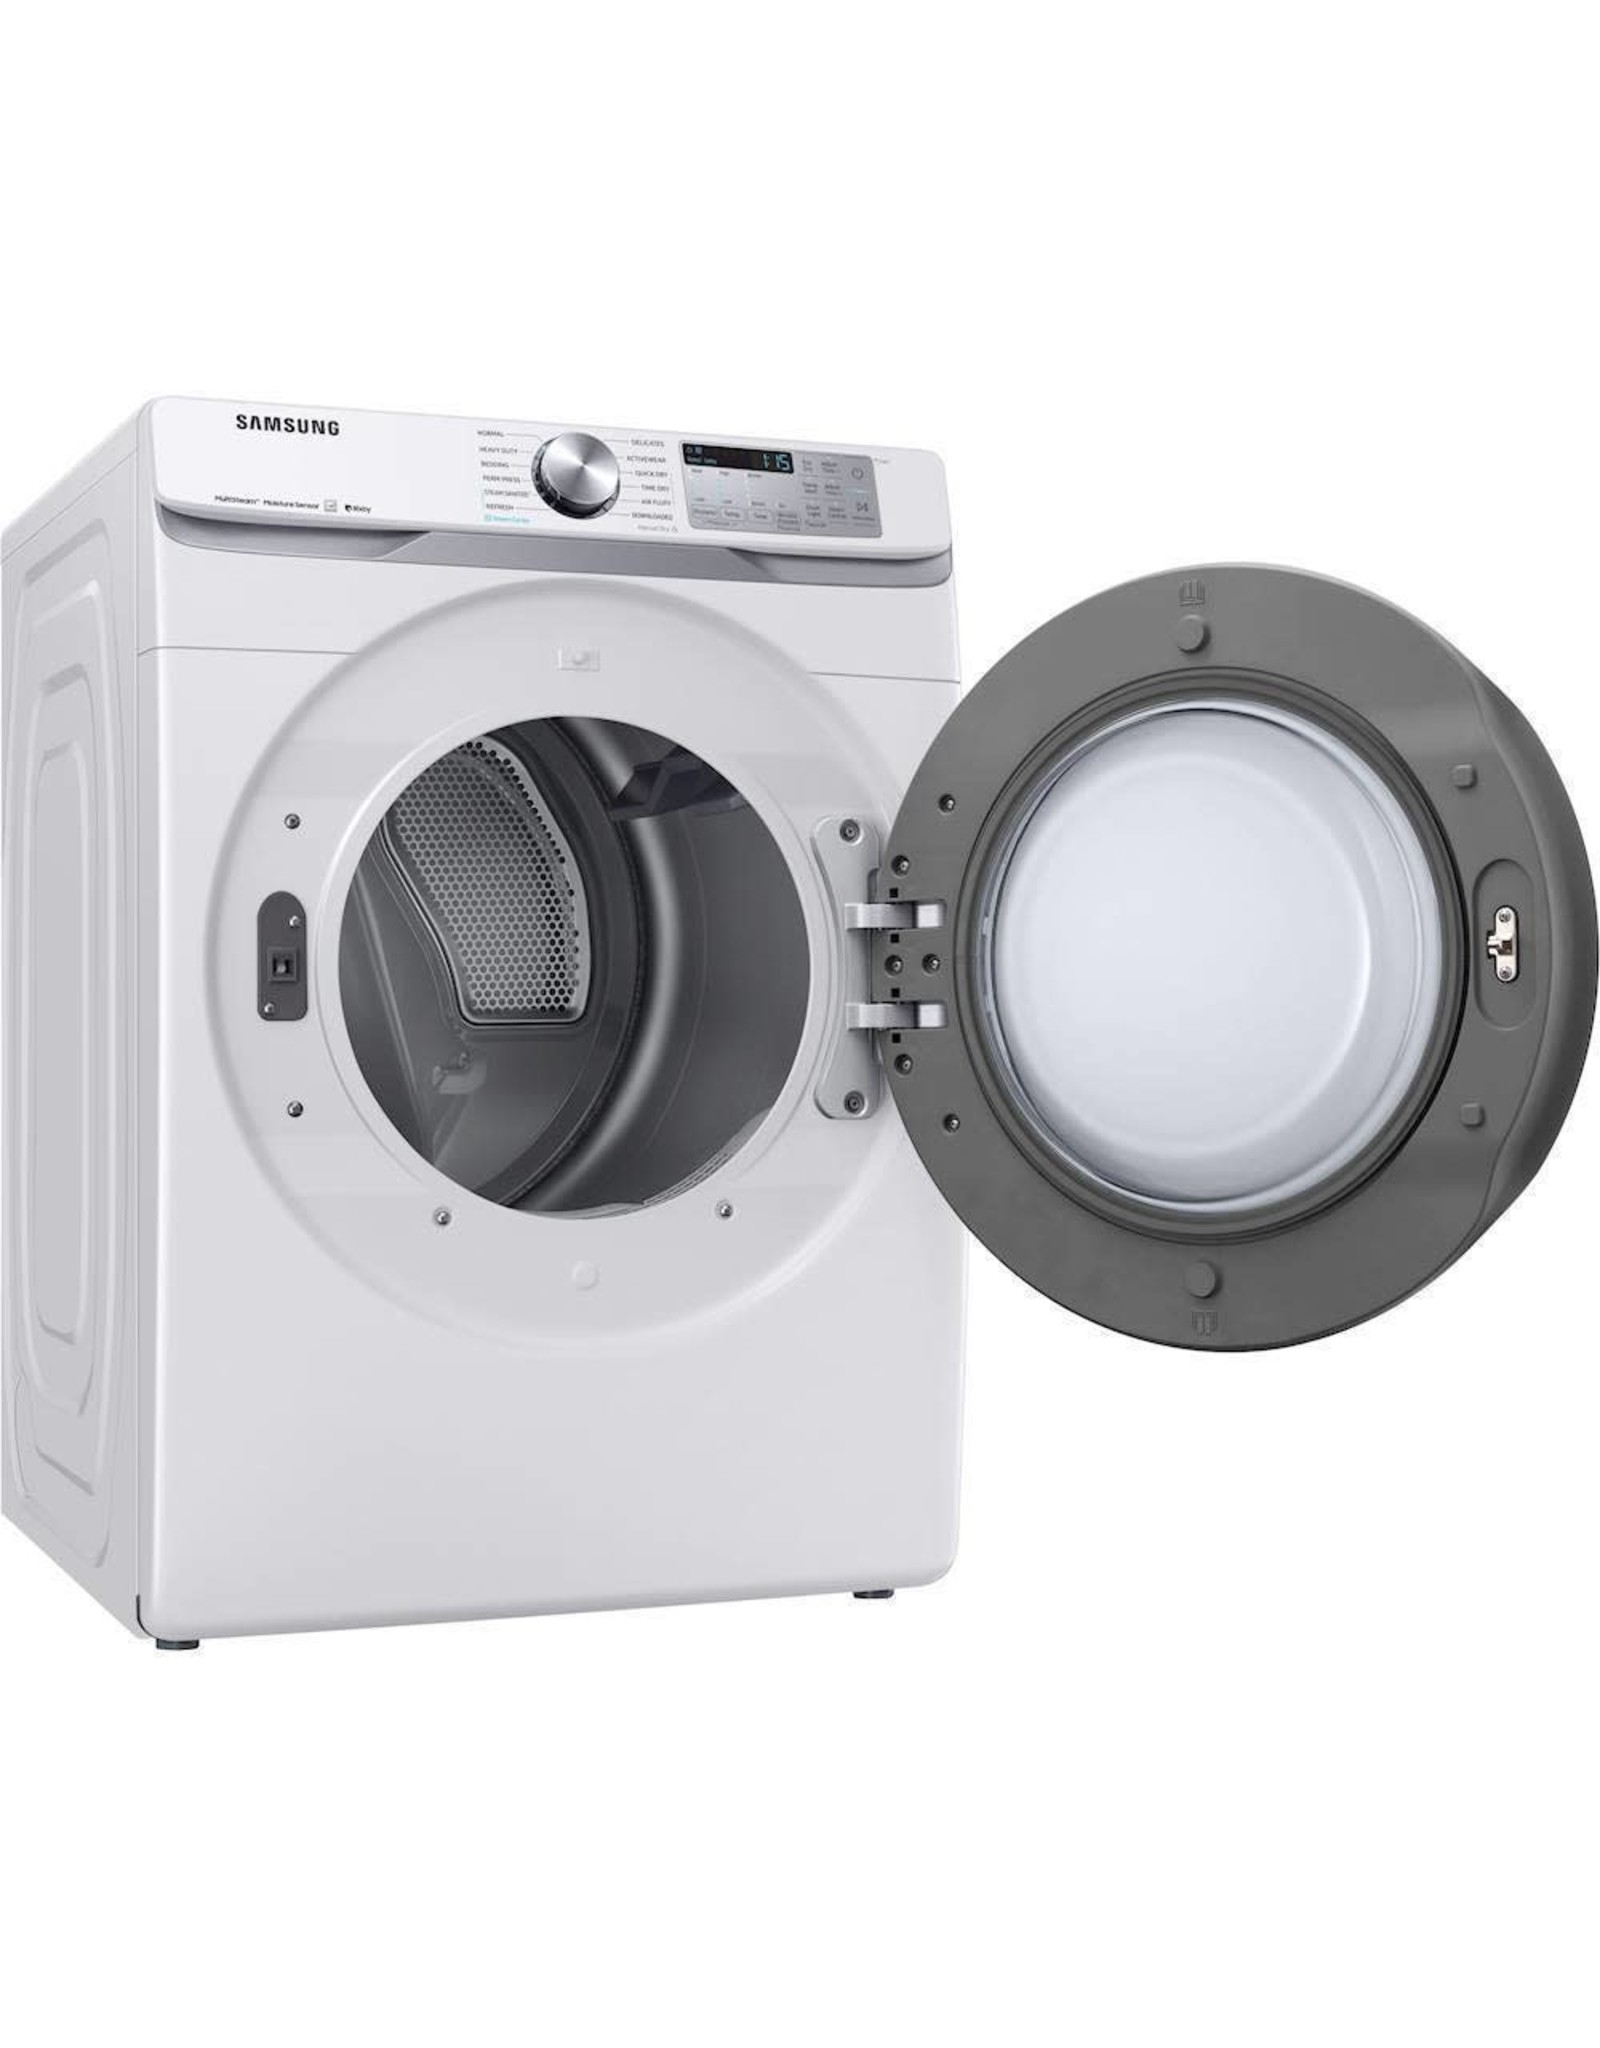 SAMSUNG Samsung 7.5 cu. ft. 240-Volt White Front Load Electric Dryer with Steam Sanitize+, ENERGY STAR